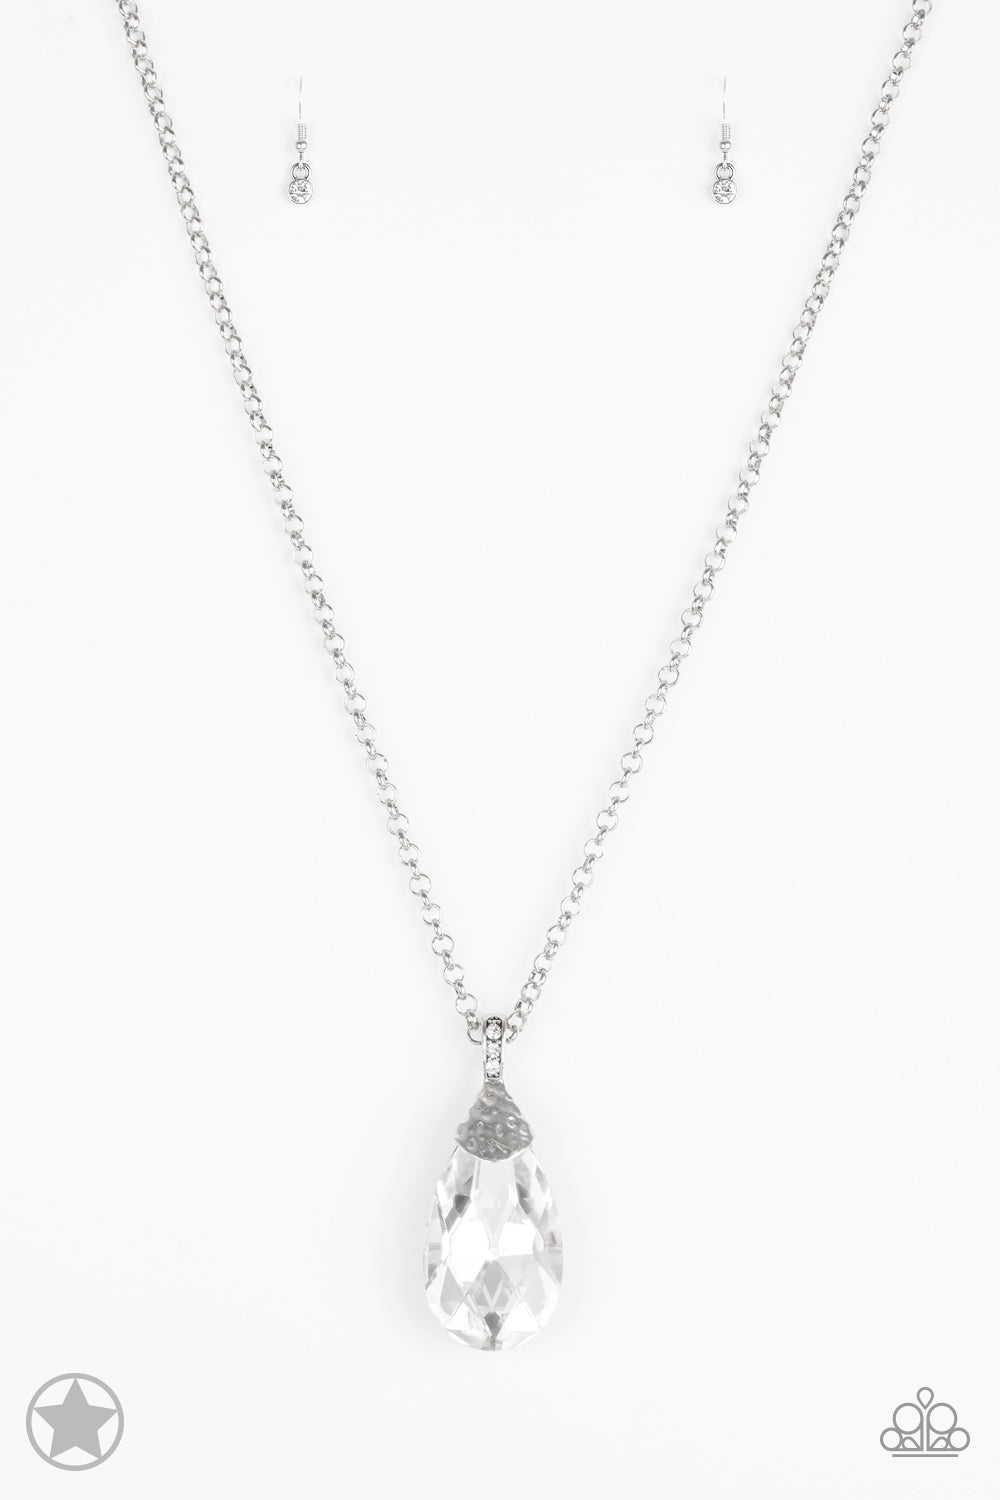 Paparazzi Accessories Spellbinding Sparkle Blockbuster Necklace - Be Adored Jewelry